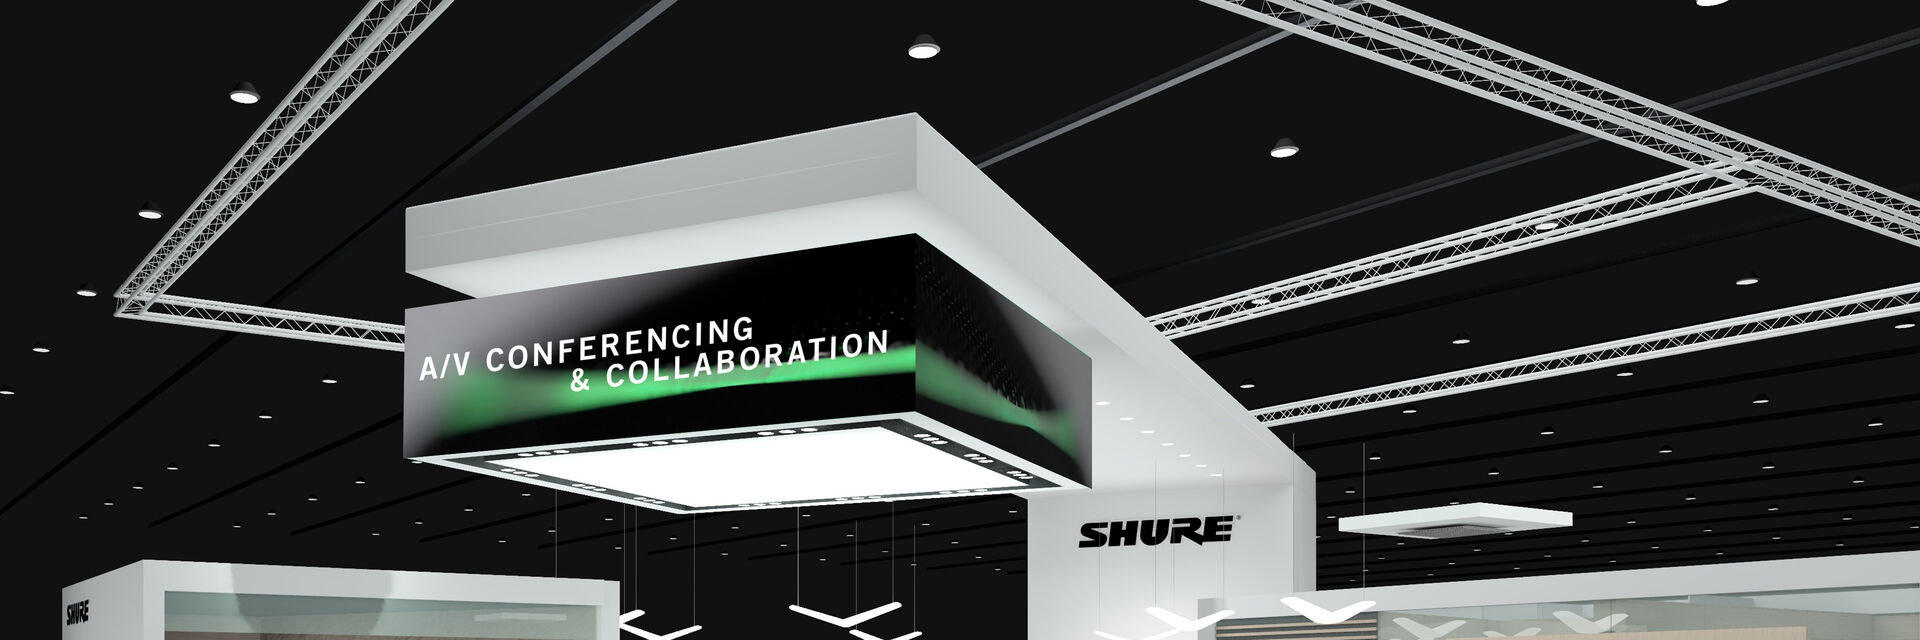 Shure @ ISE 2017: Integrated Systems